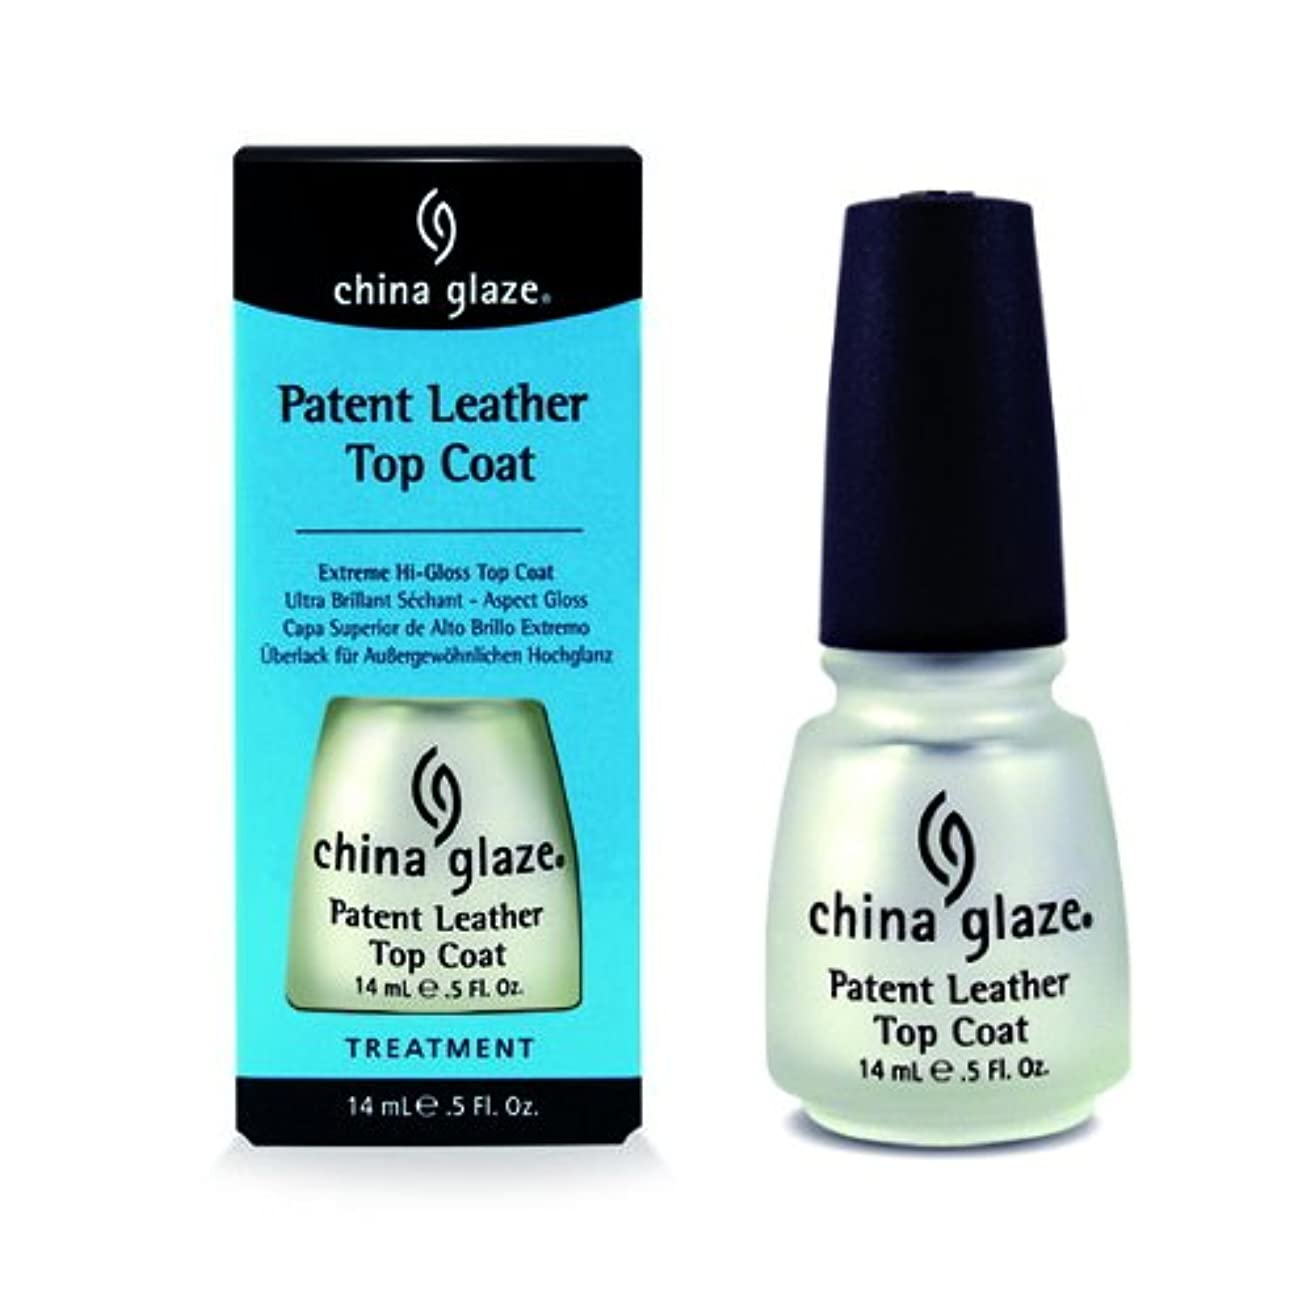 繕う廃棄するバレーボールCHINA GLAZE Patent Leather Top Coat (Extreme Shine) - CGT915 (並行輸入品)